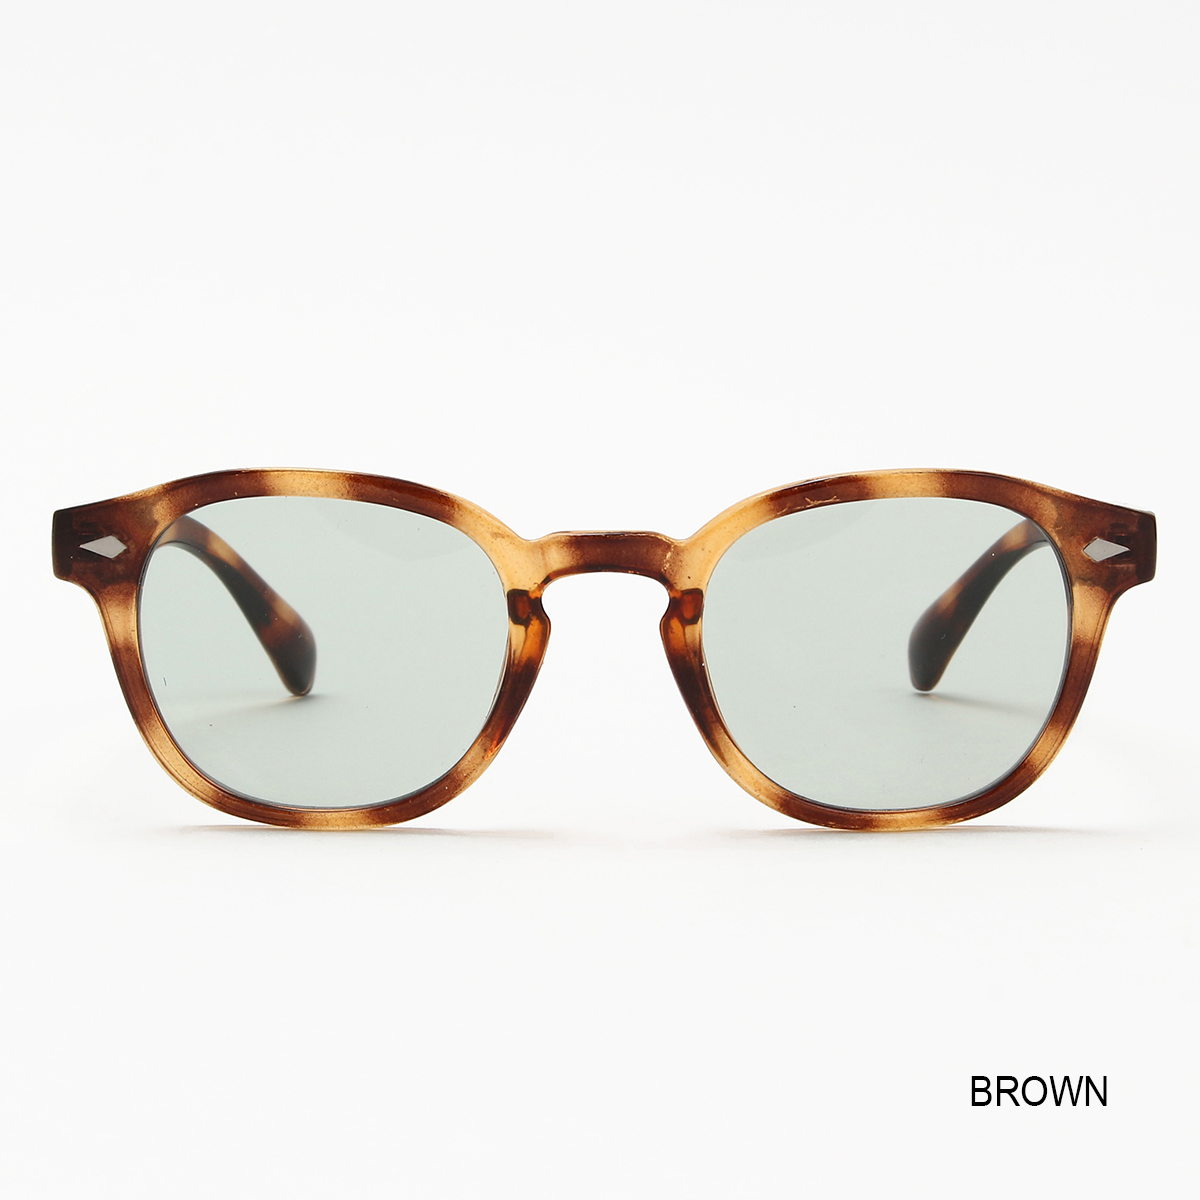 WELLINGTON-TYPE SUNGLASSES(BROWN&SMOKE) TACS20SP03